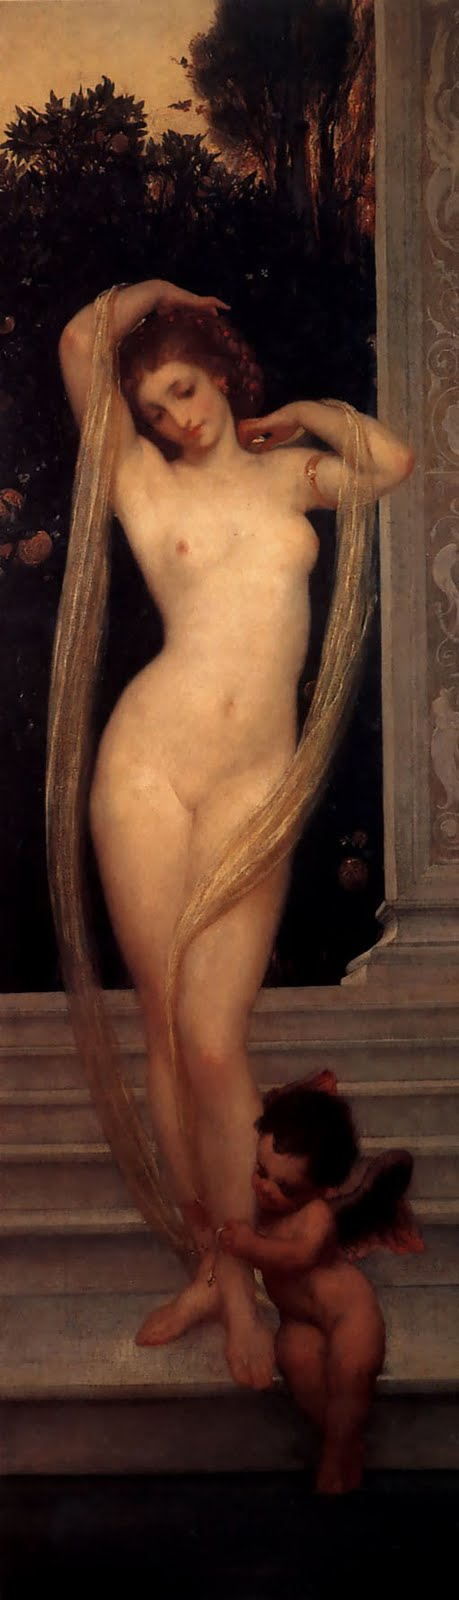 lord frederick leighton bather